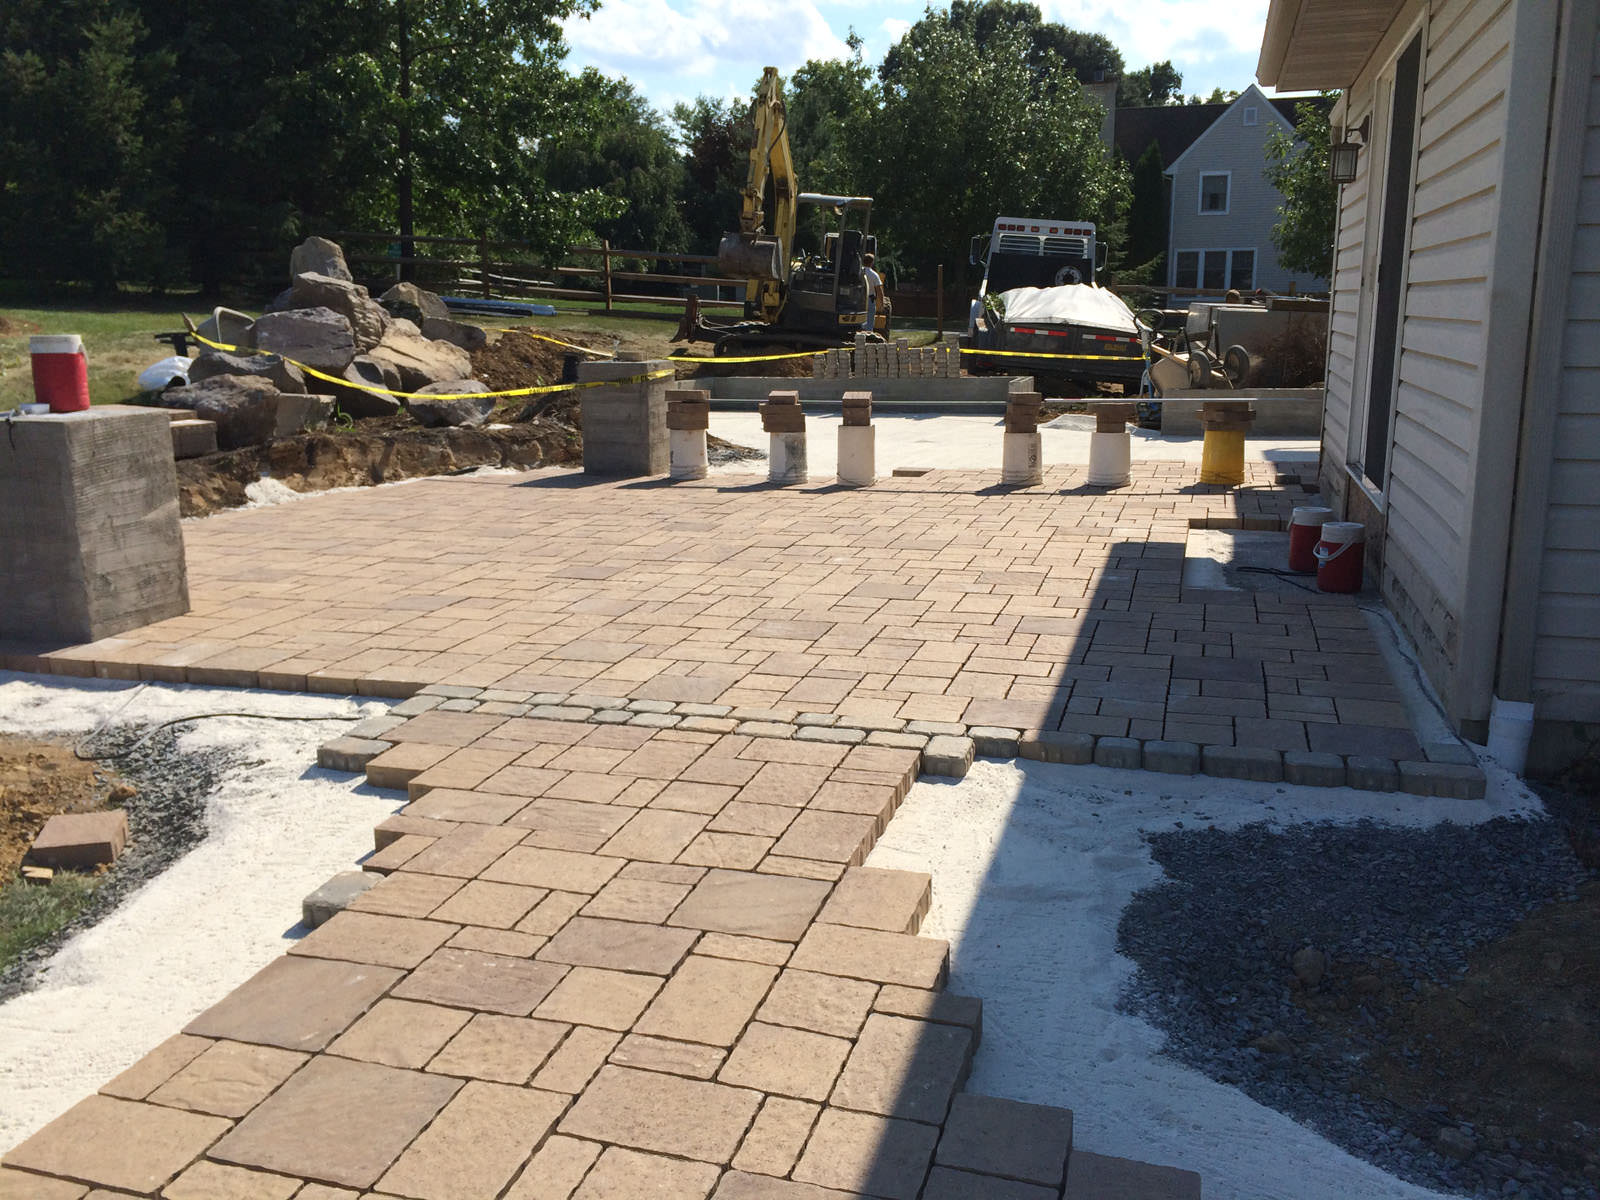 When we started to install the low maintenance paver patio, the homeowners were ecstatic over the gained square footage!